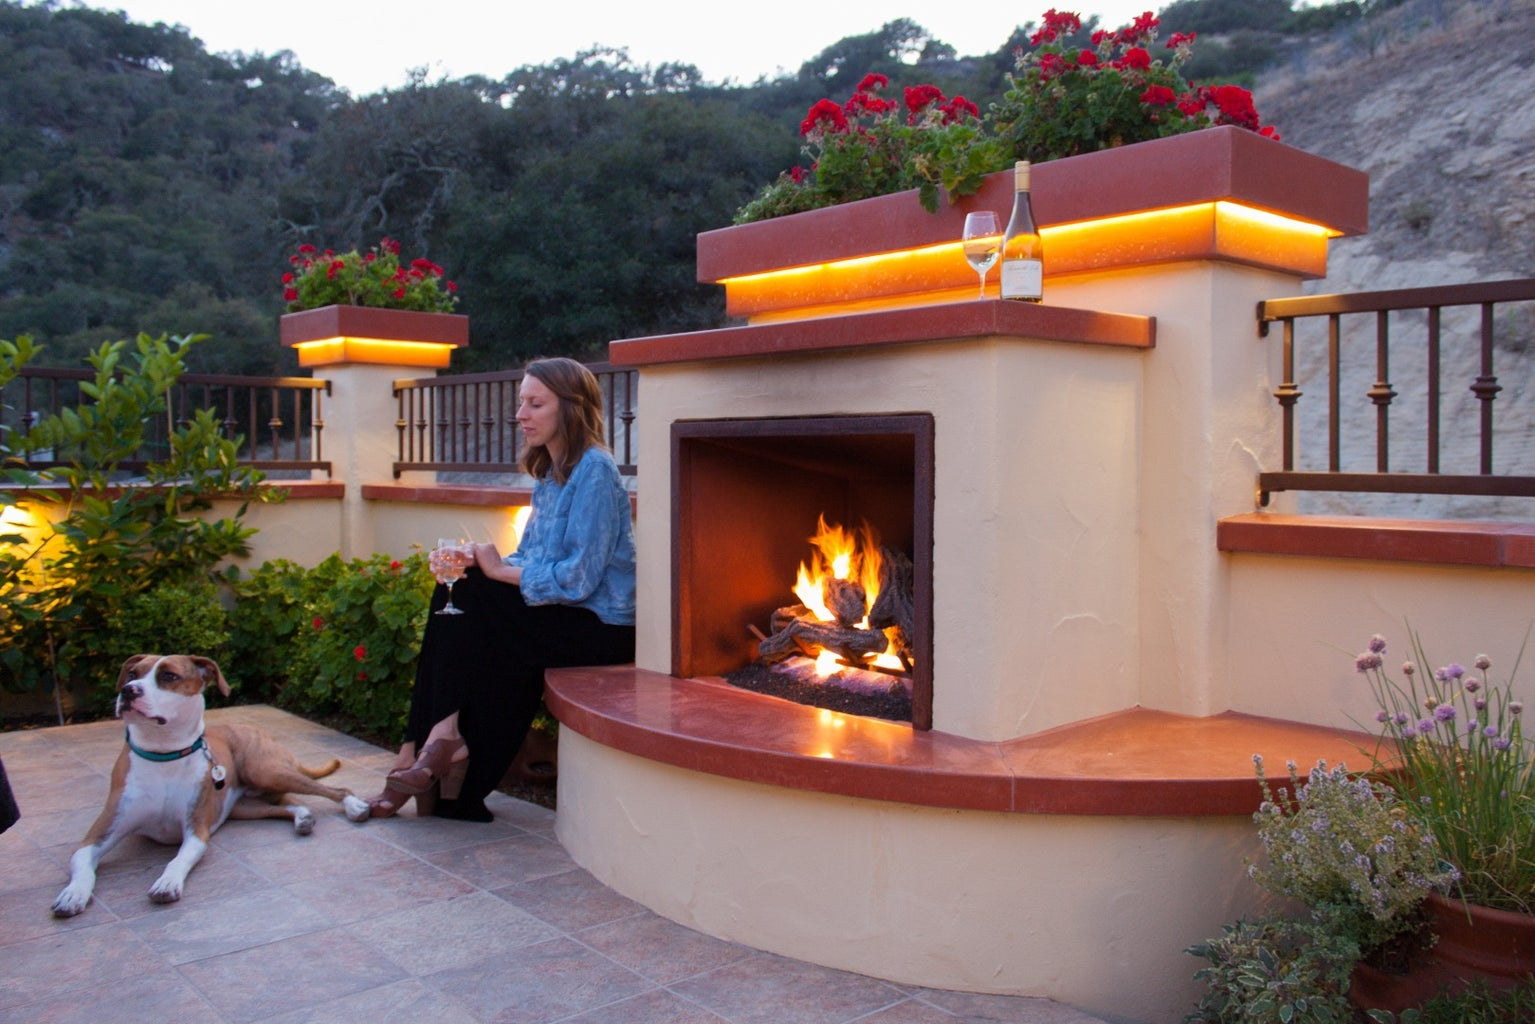 Architectural Cast Concrete: Wall Caps, Column Caps, and Fireplace Hearth and Mantel